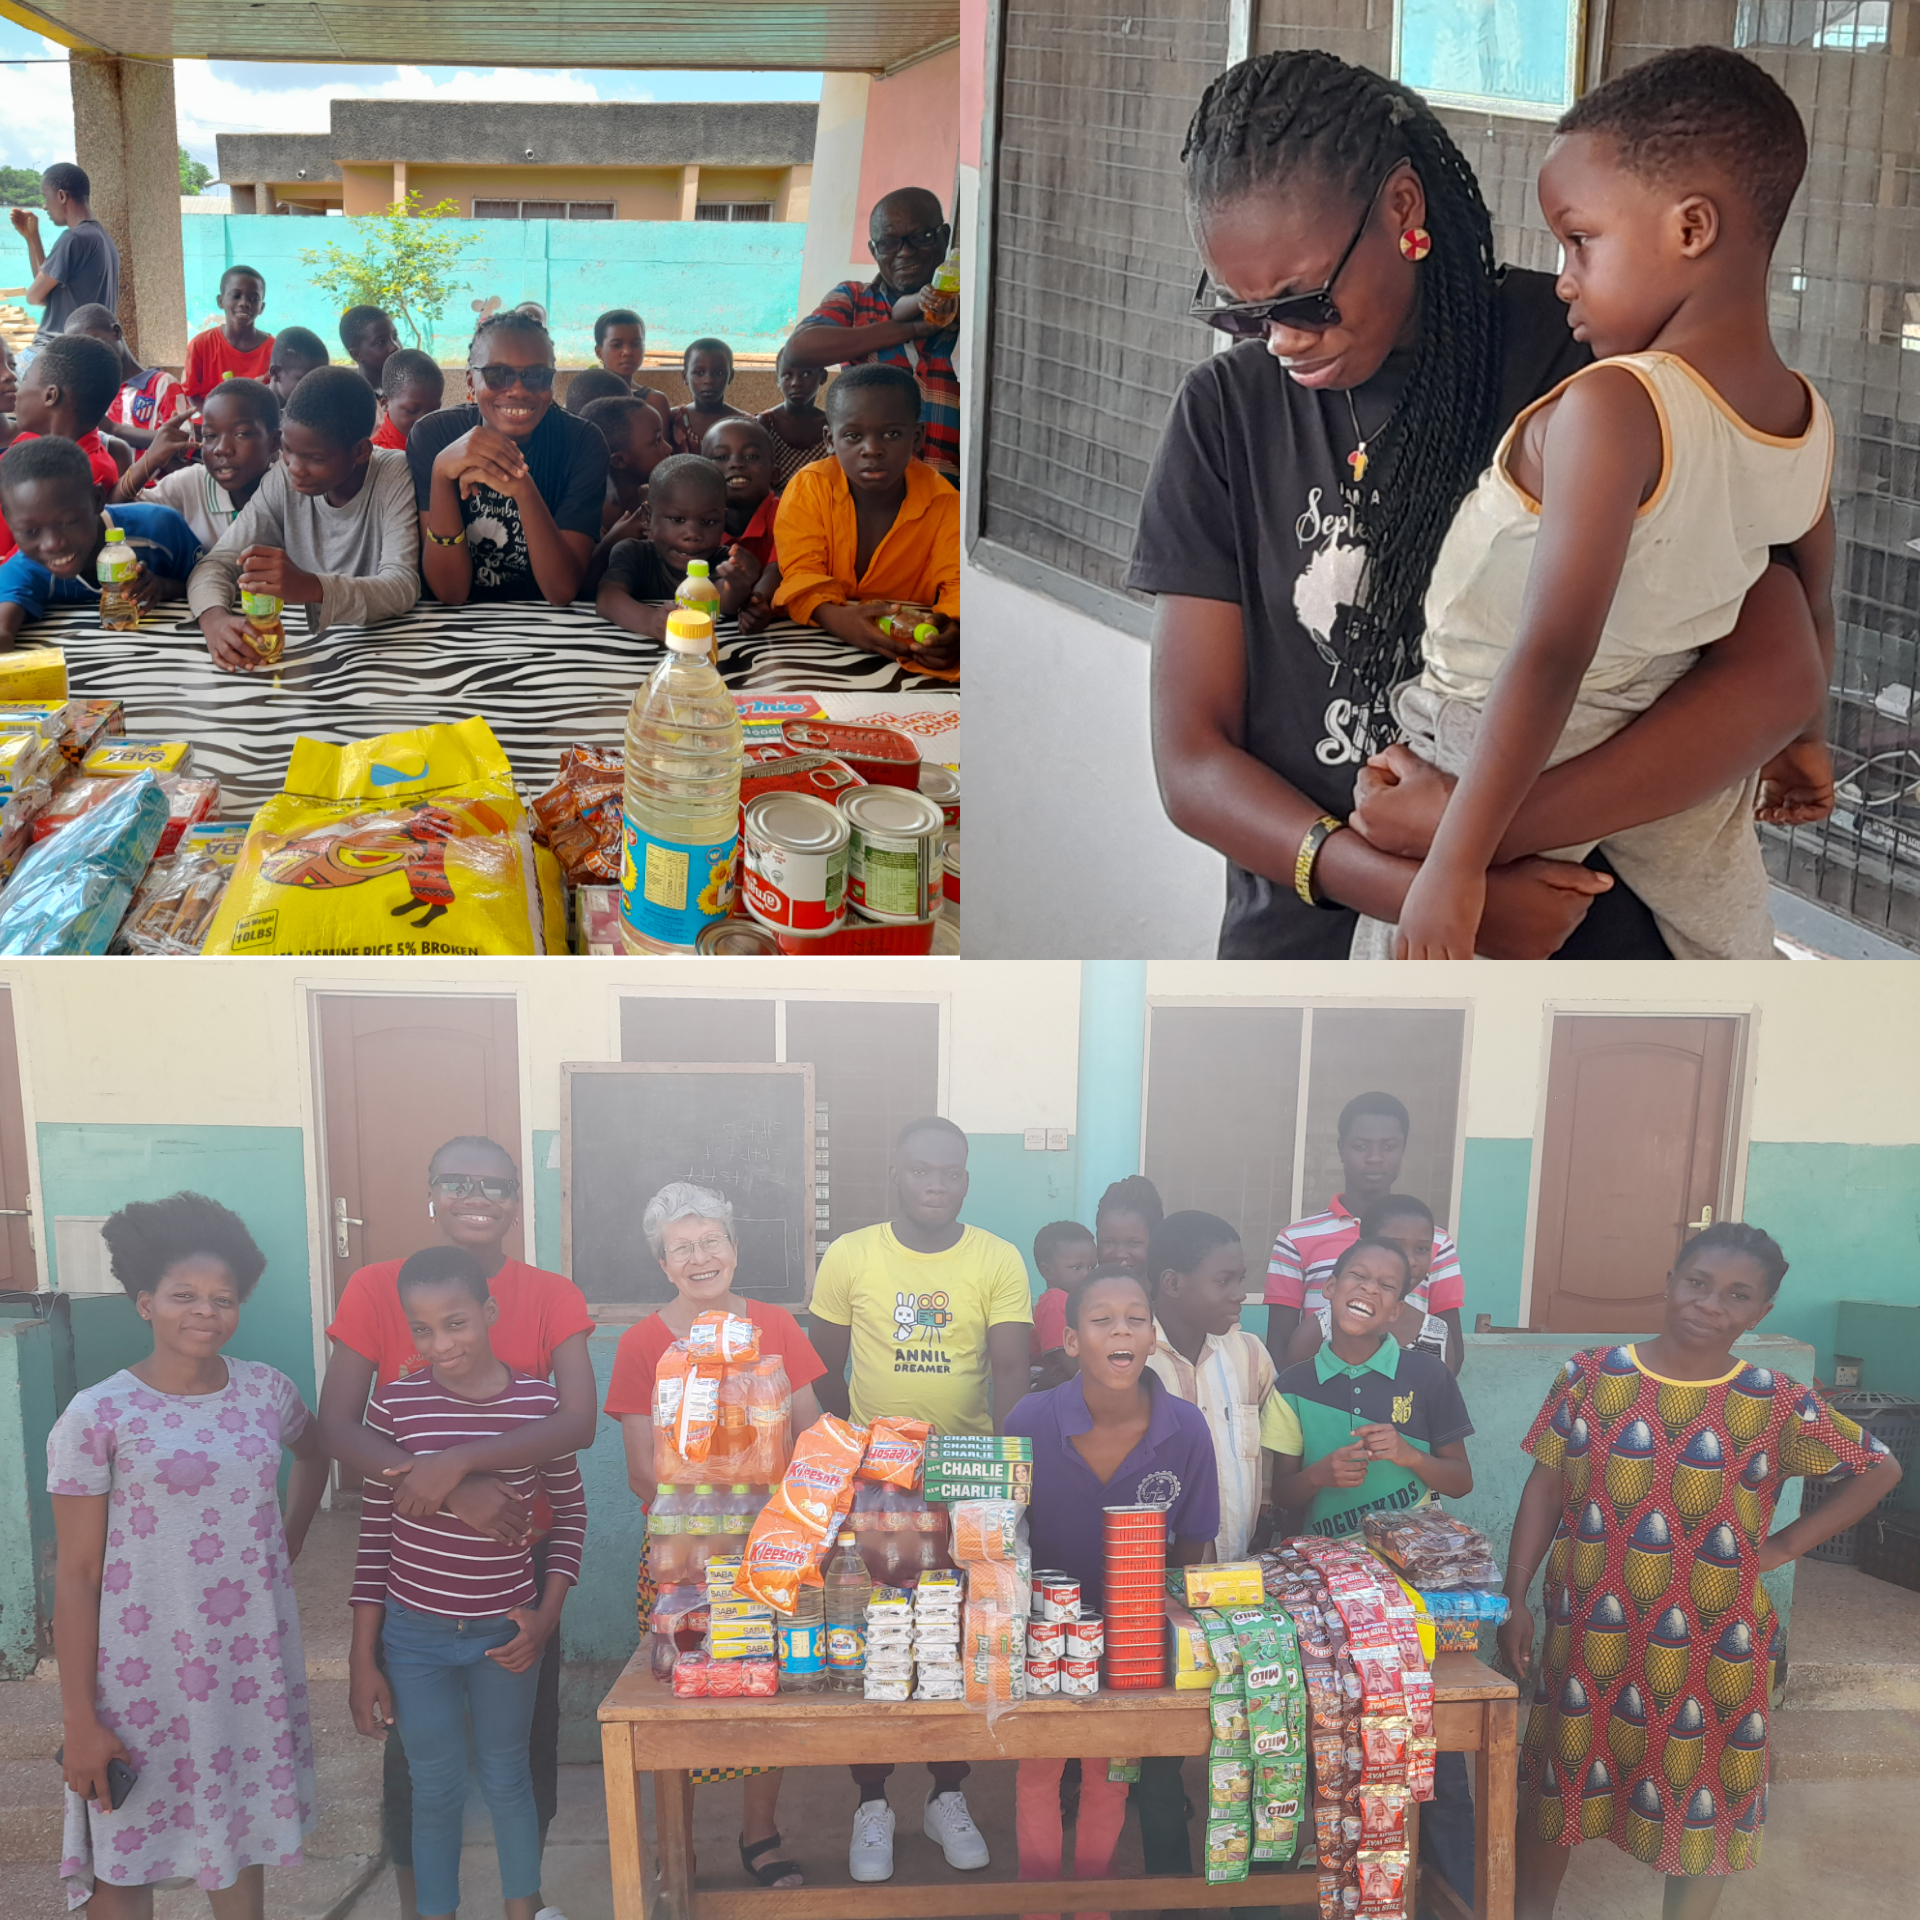 Freda Owusuaah Bioh donation to the orphans in 2021